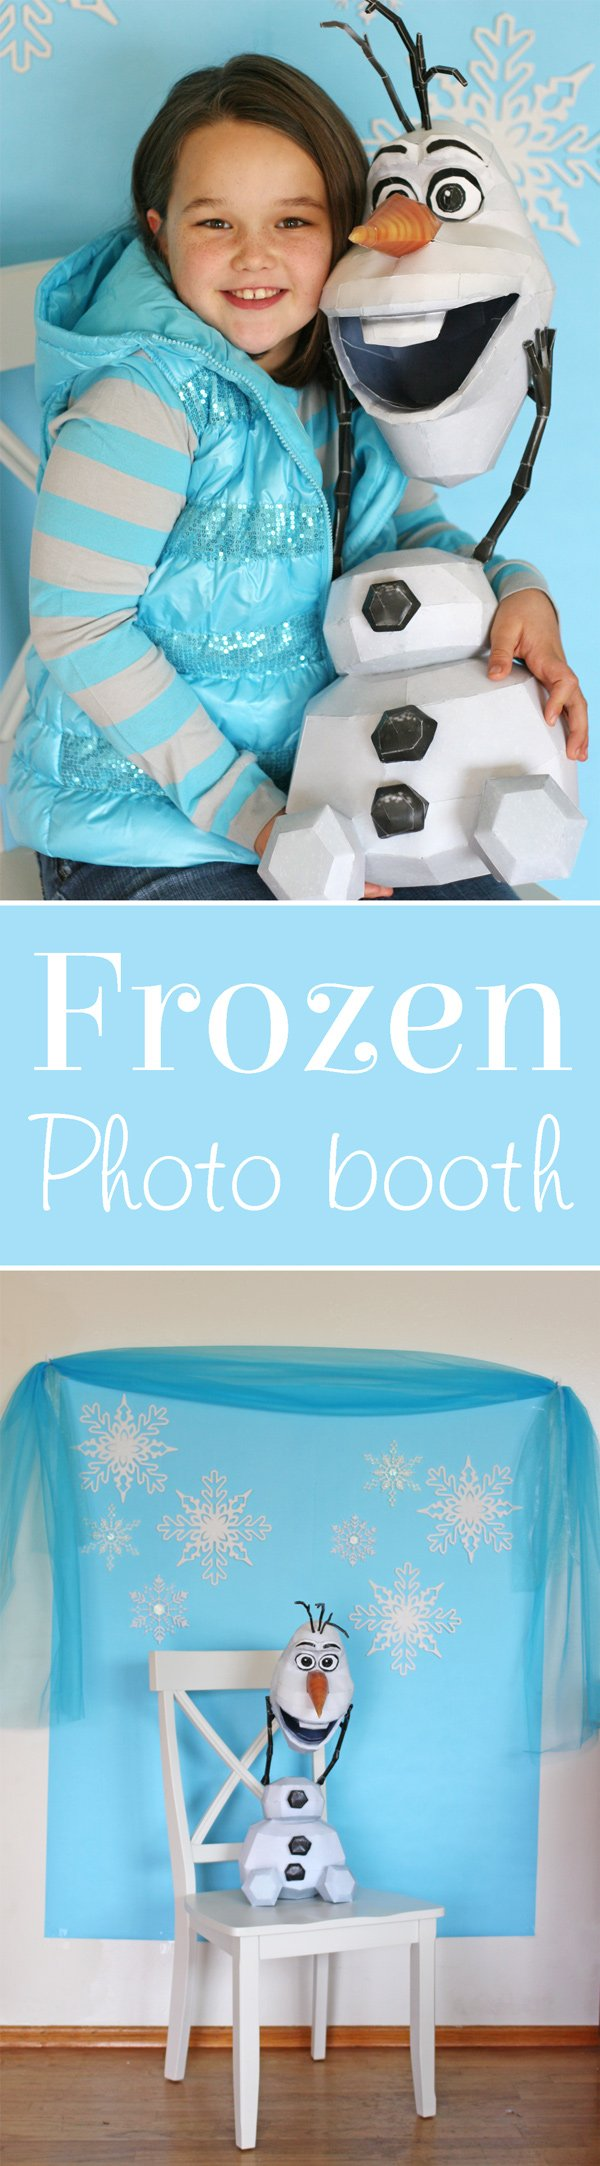 Photo backdrop ideas for a Frozen birthday party.  Perfect for any winter or Christmas theme too!